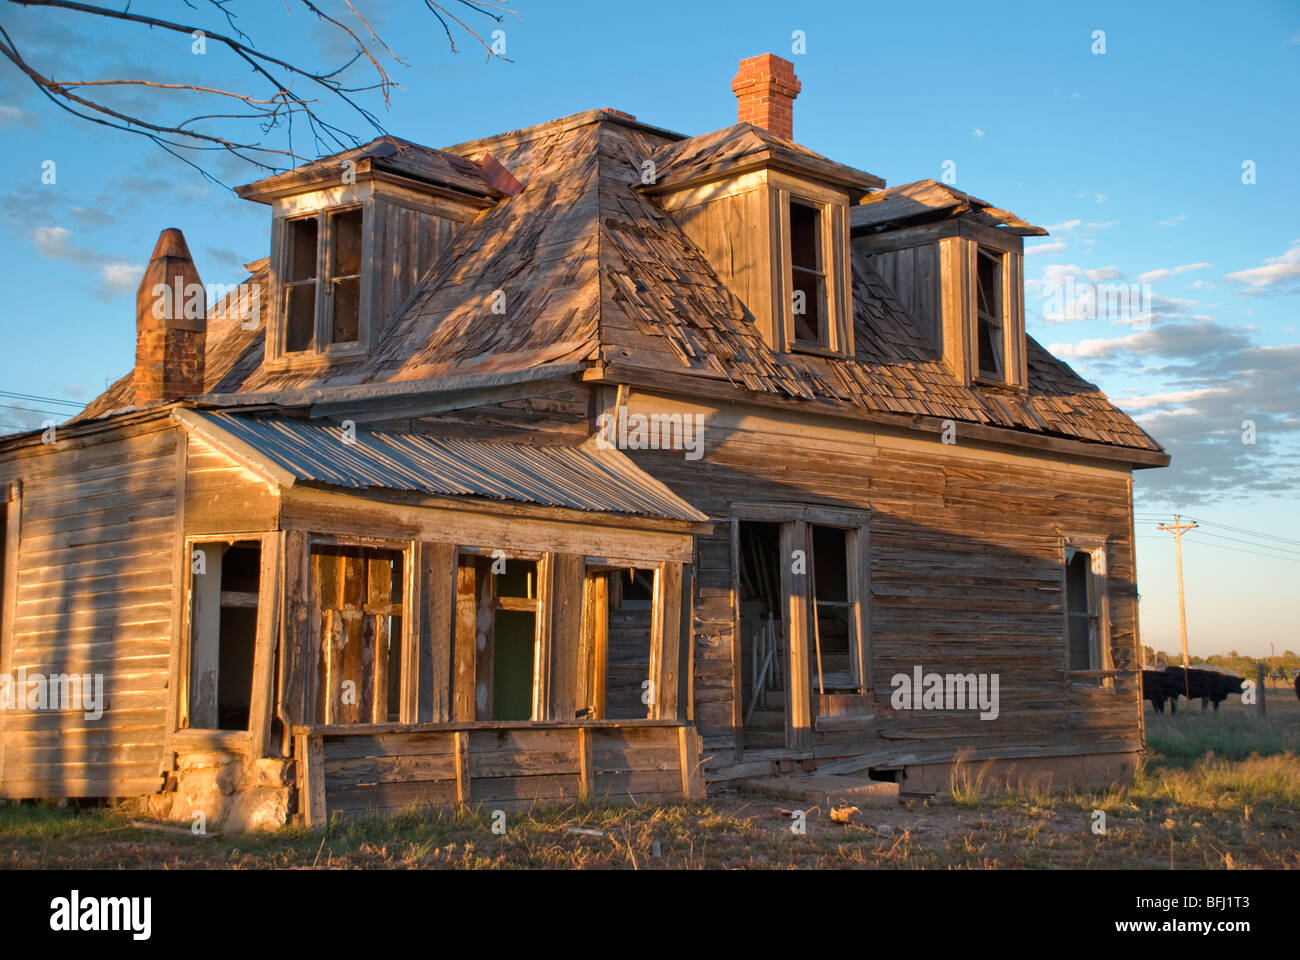 An old deserted house at sunset makes the perfect backdrop for Halloween. - Stock Image